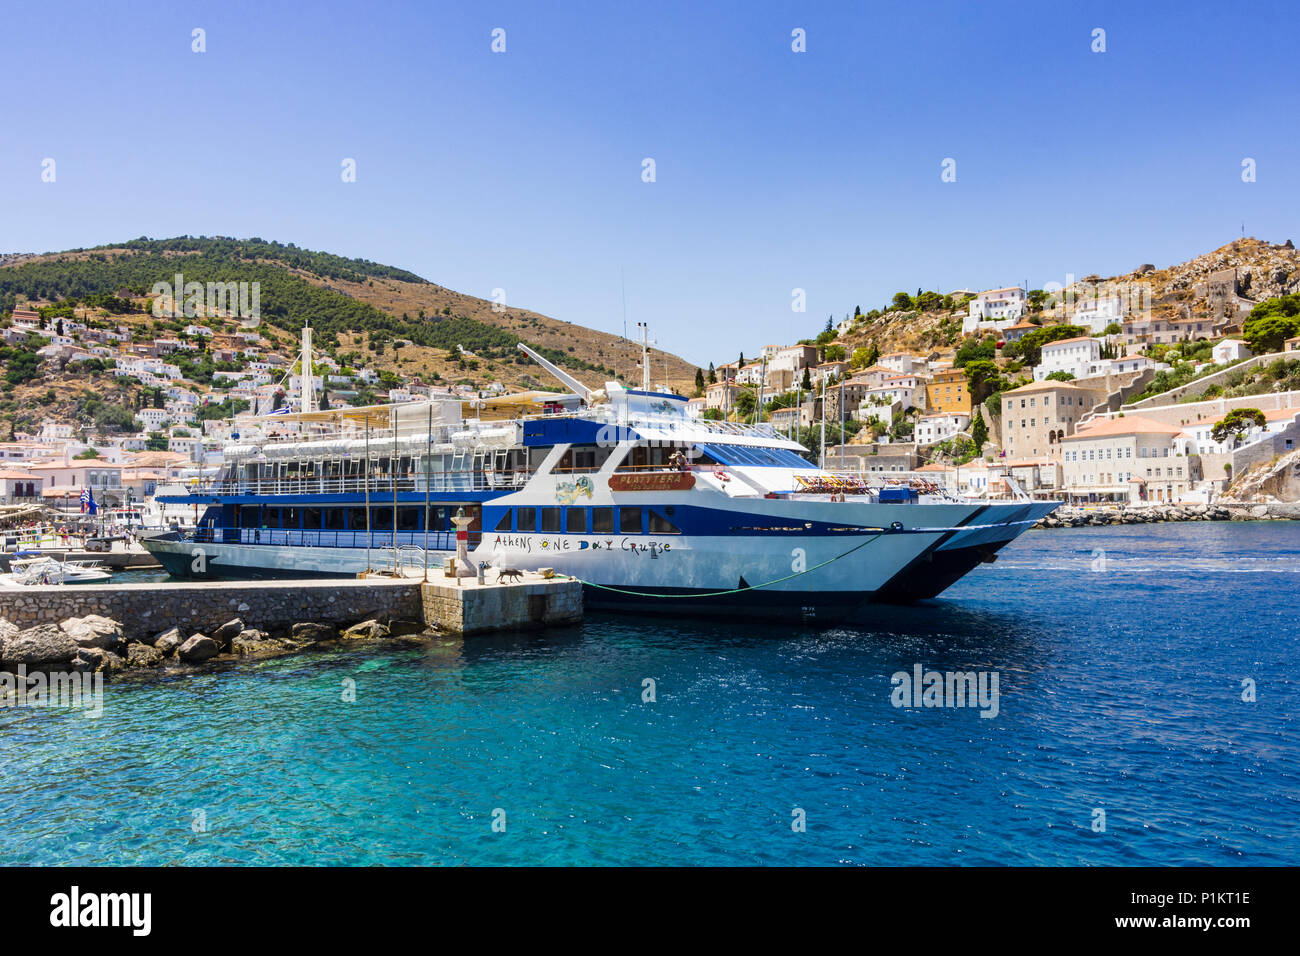 Athens One Day Cruise ferry boat moored at Hydra harbour, Hydra Island Greece - Stock Image